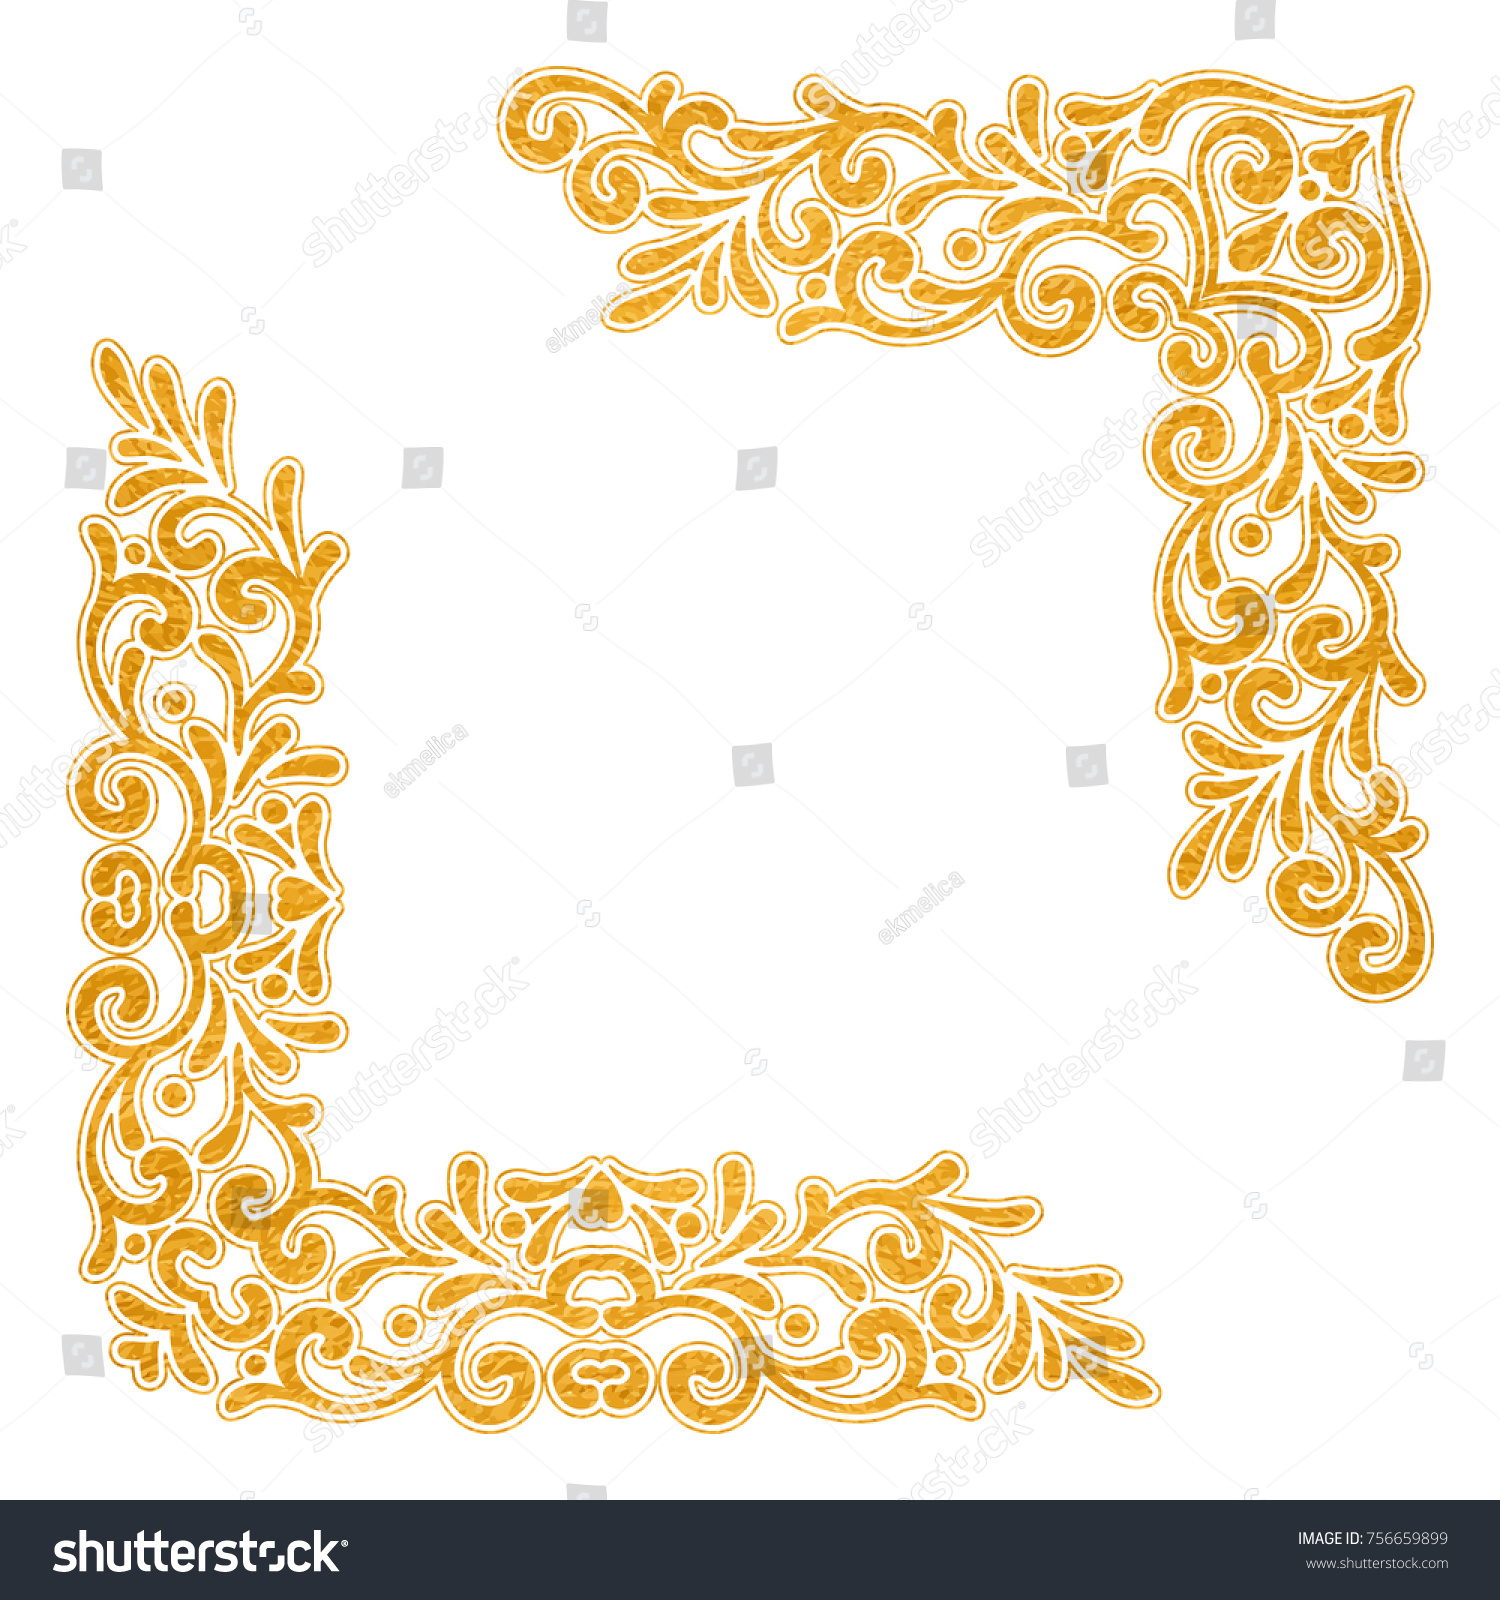 Gold Textured Vintage Corners On White Stock Vector HD (Royalty Free ...